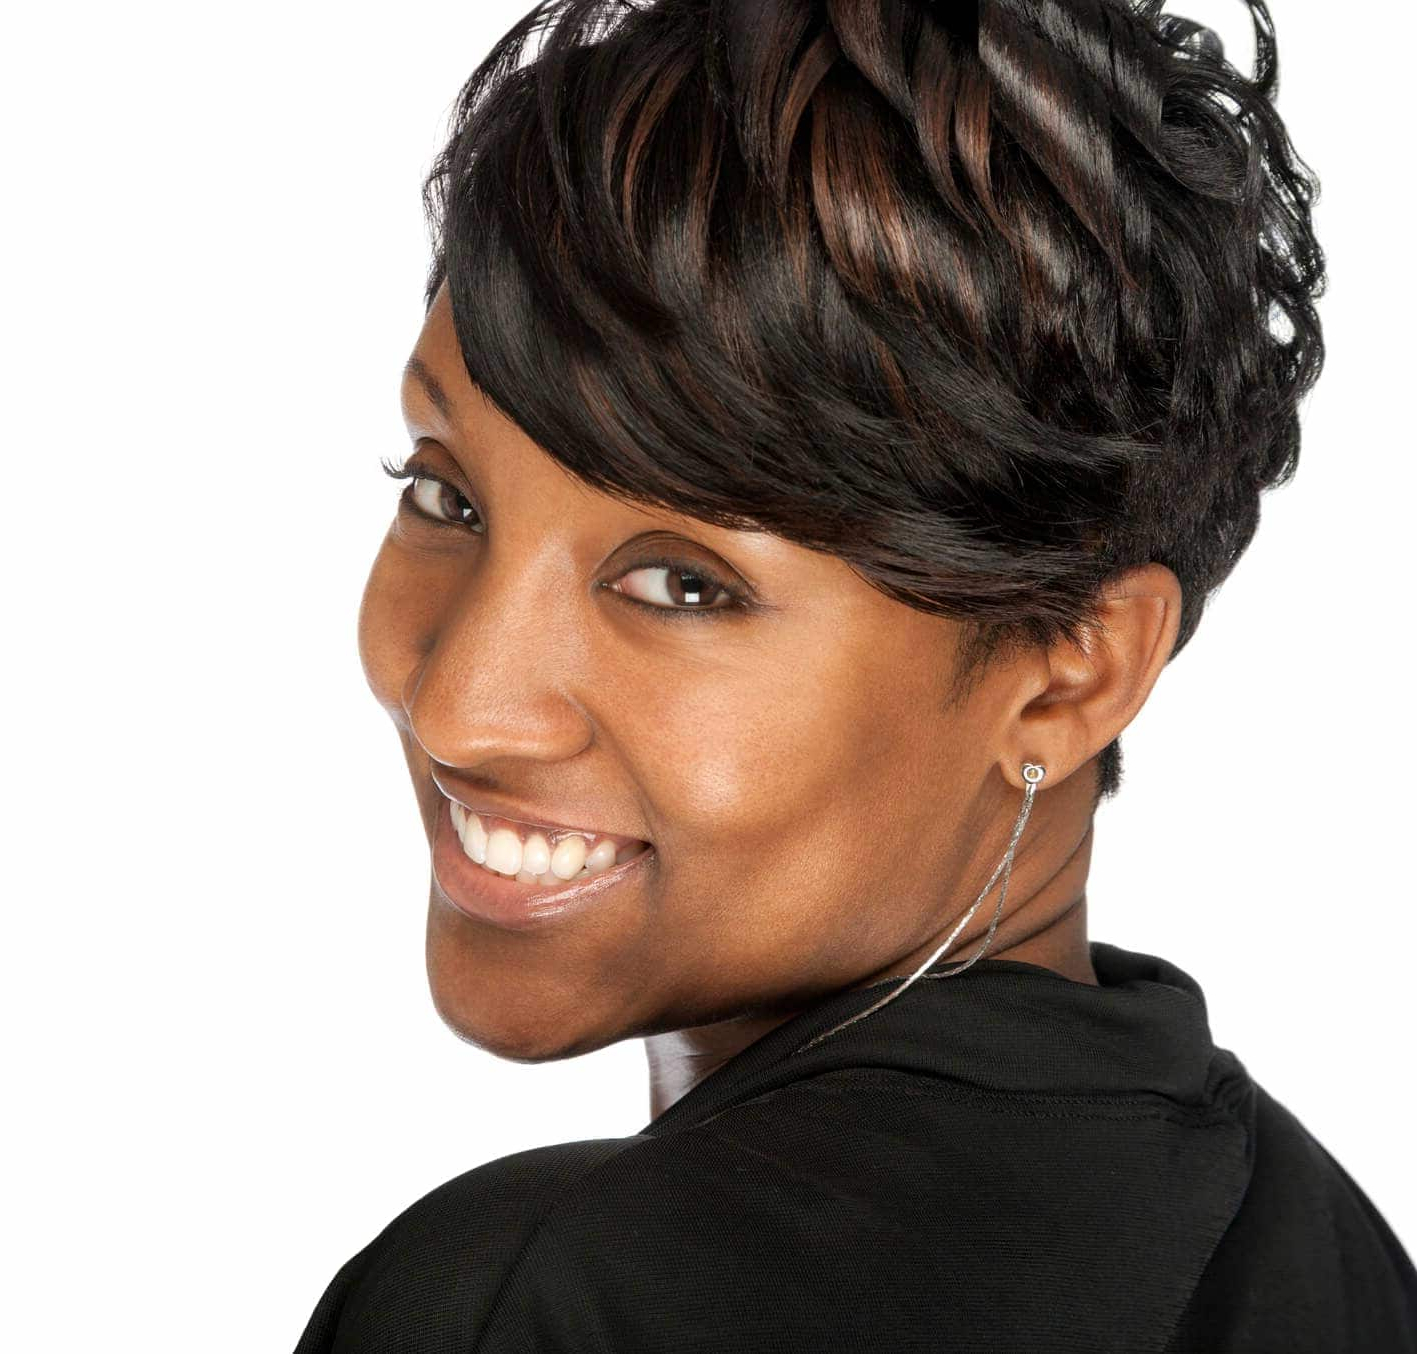 Short Hairstyles For Black Women: 18 Styles We Love With Regard To Short Hairstyles For Afro Hair (View 19 of 25)